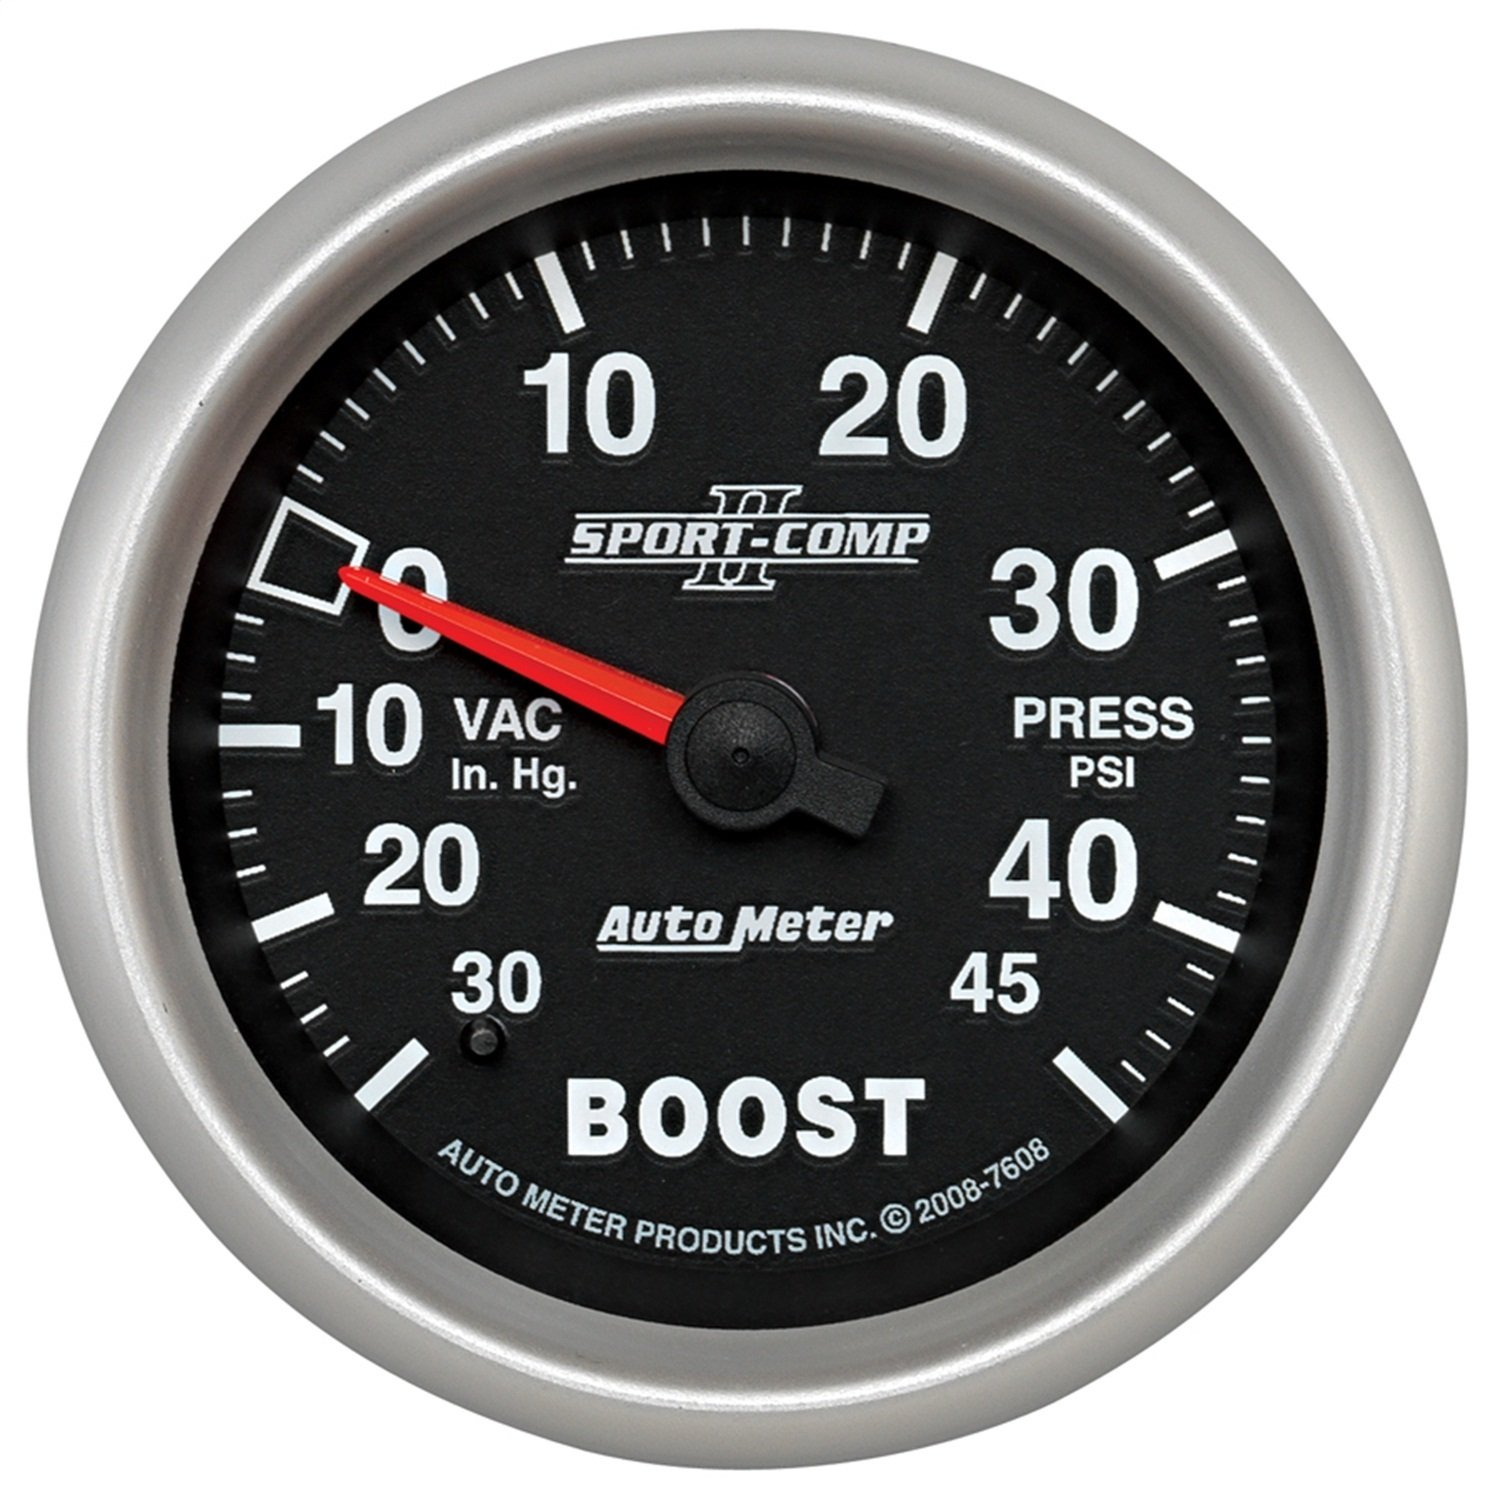 Hg//45 PSI Mechanical Vacuum//Boost Gauge Auto Meter 7608 Sport-Comp II 2-5//8 30 in